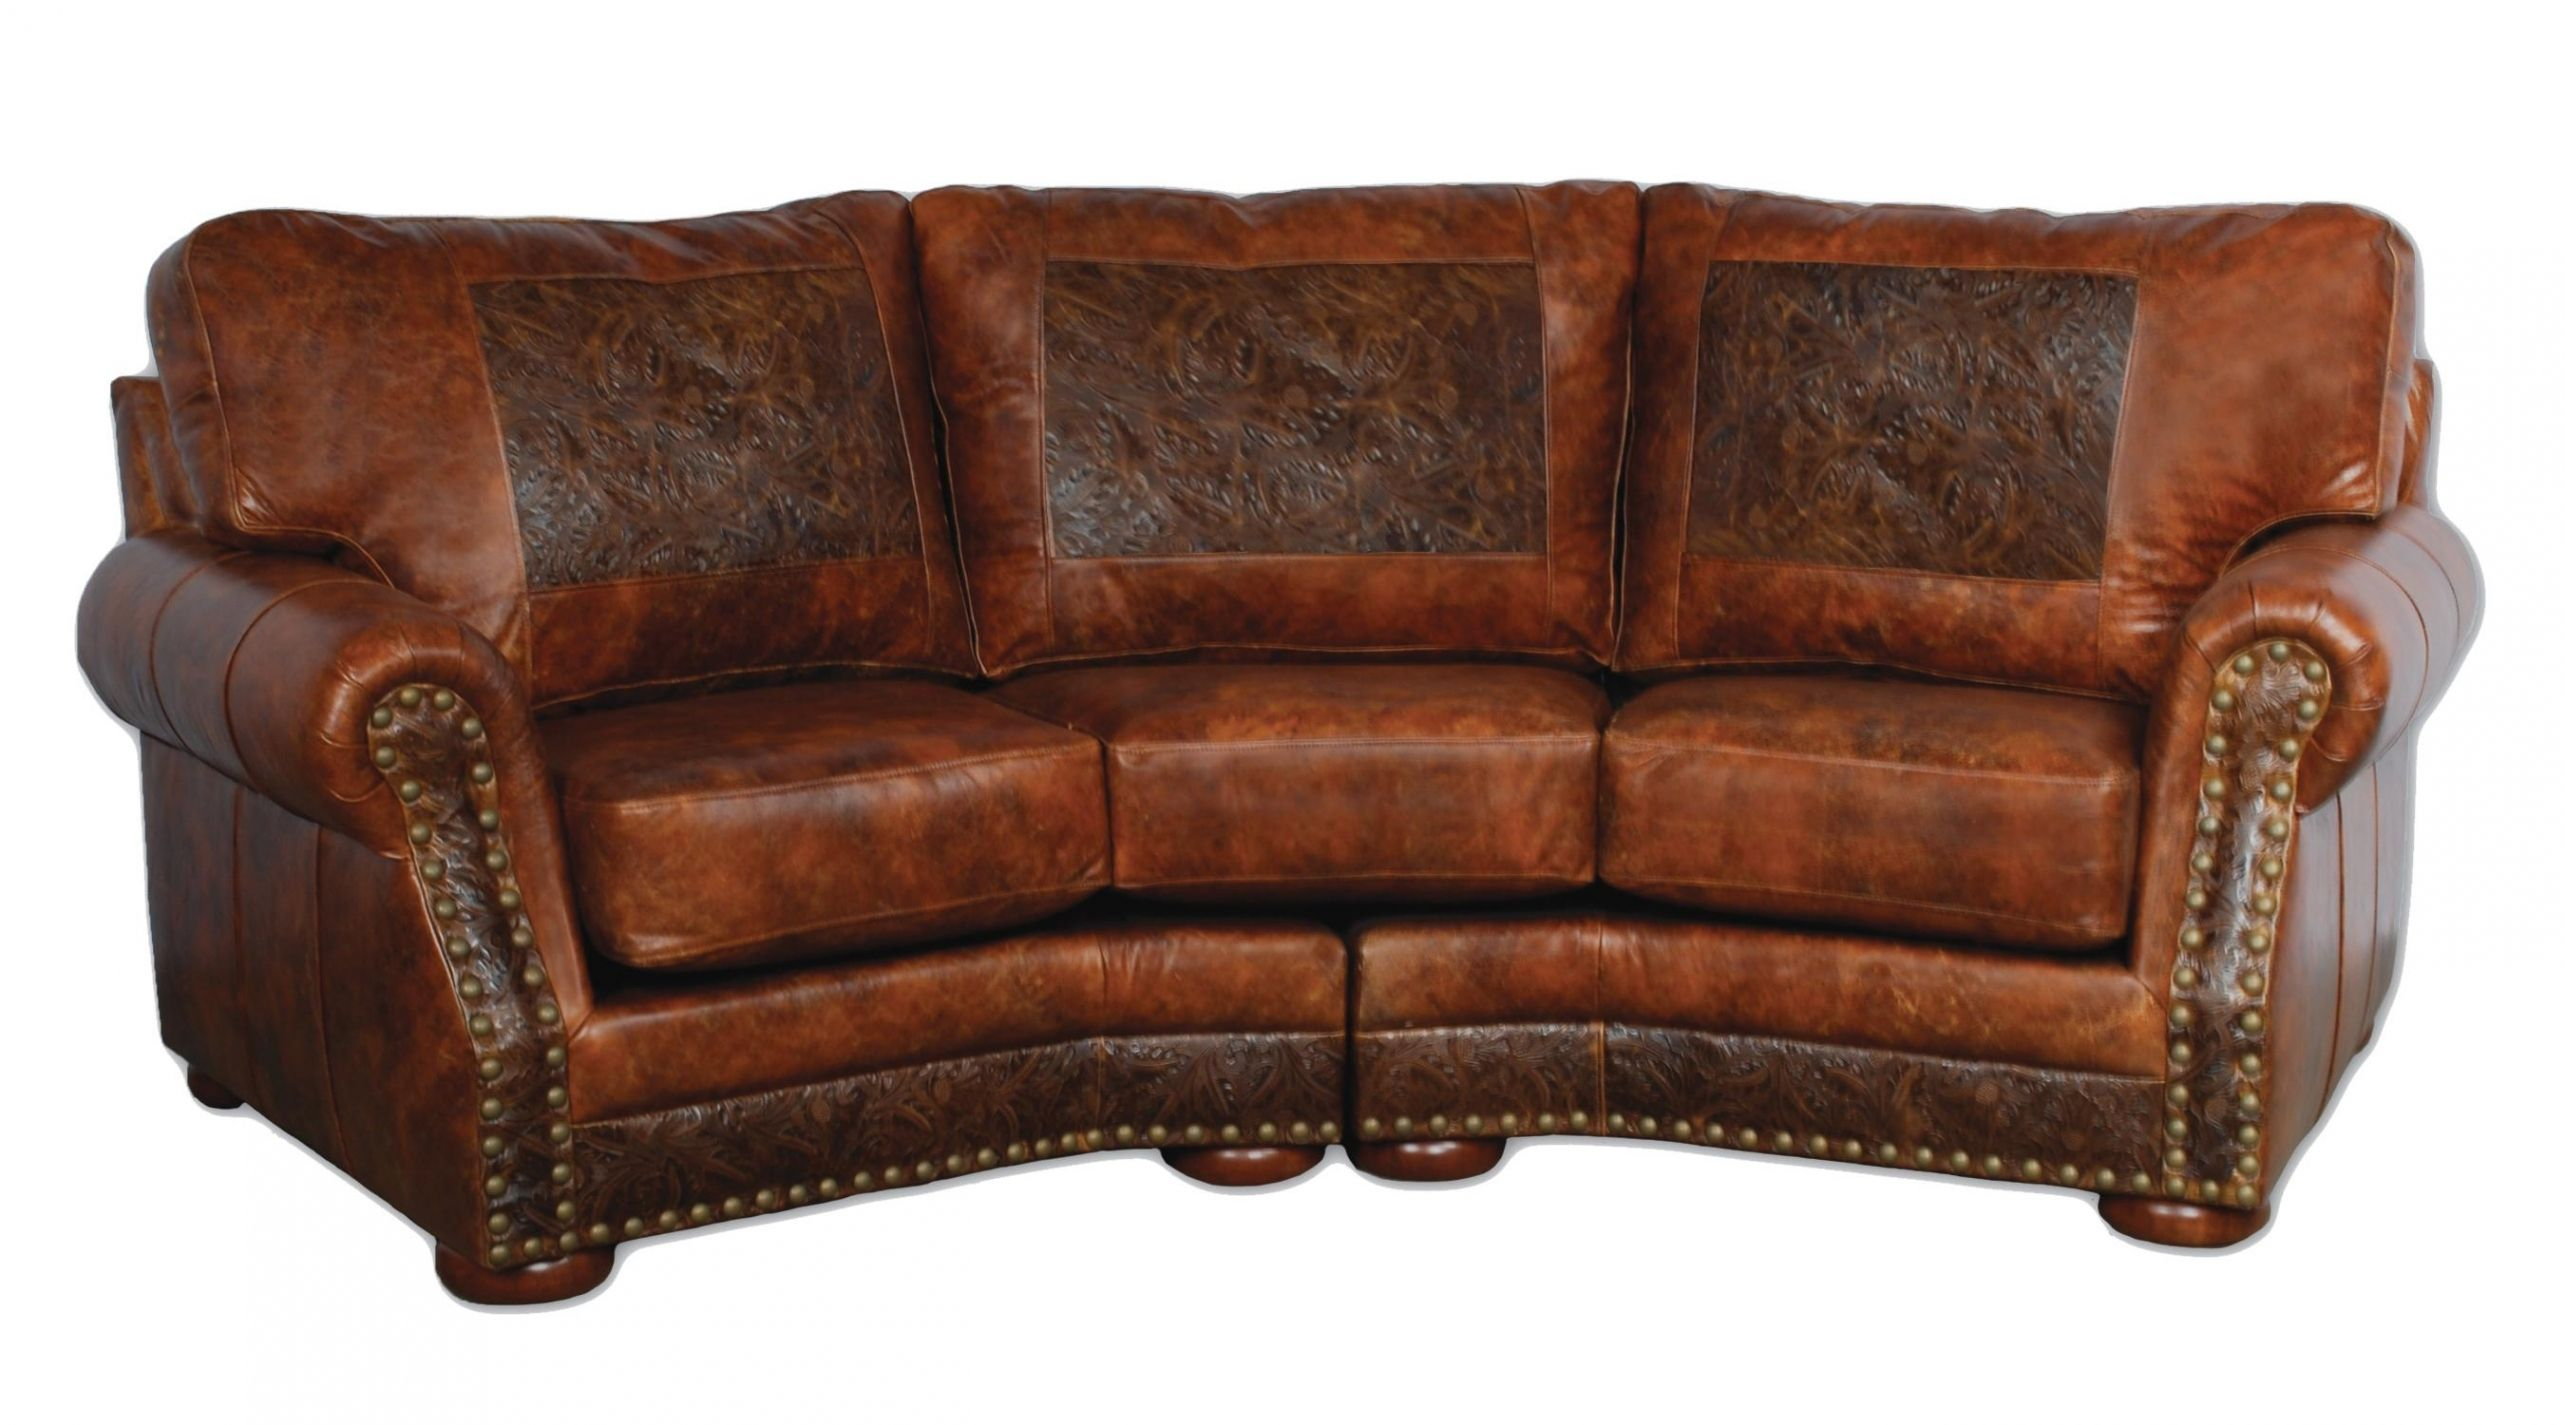 Distressed Leather Armchair Uk Where To Rent Tables And Chairs Furniture Homey Design Rustic Sofas Tan Fabric Brown Fullgrain Modern Stylist Luxury